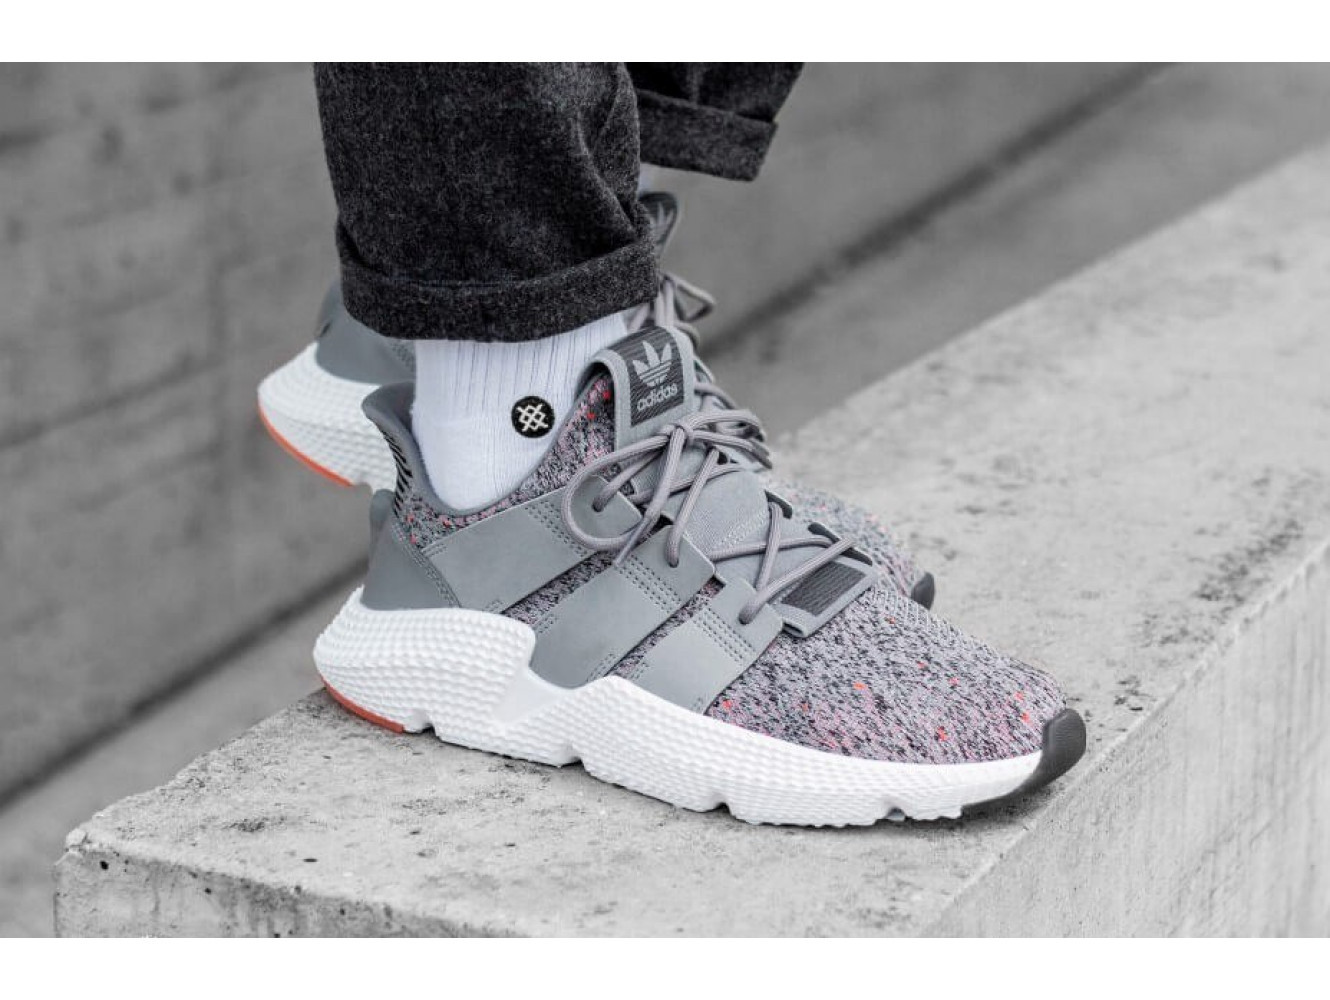 Adidas Prophere Grey/White/Solar Red (003)